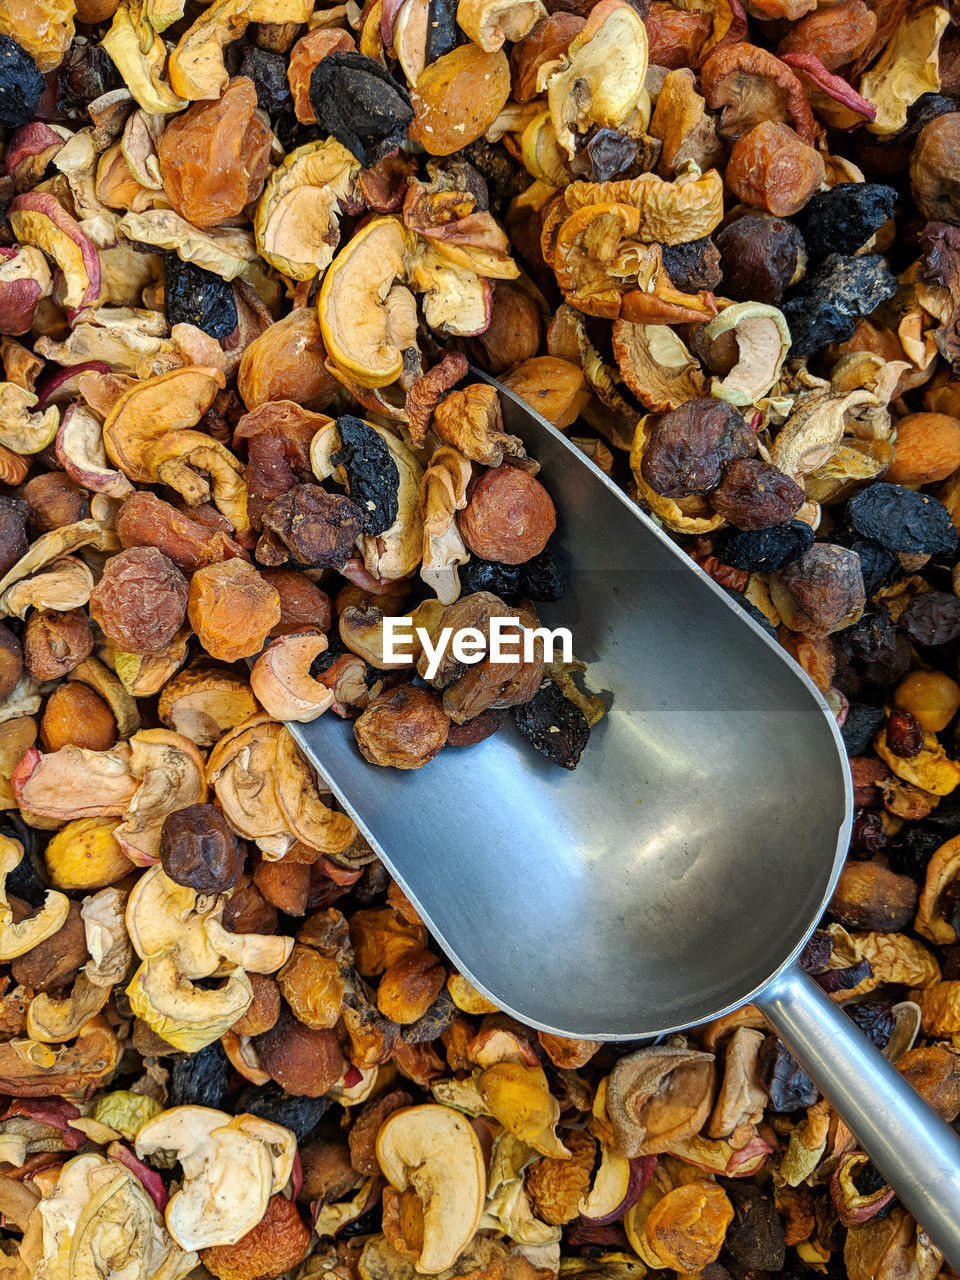 food, food and drink, spoon, wellbeing, healthy eating, kitchen utensil, still life, no people, large group of objects, abundance, eating utensil, freshness, high angle view, directly above, nut, close-up, day, fruit, nut - food, walnut, snack